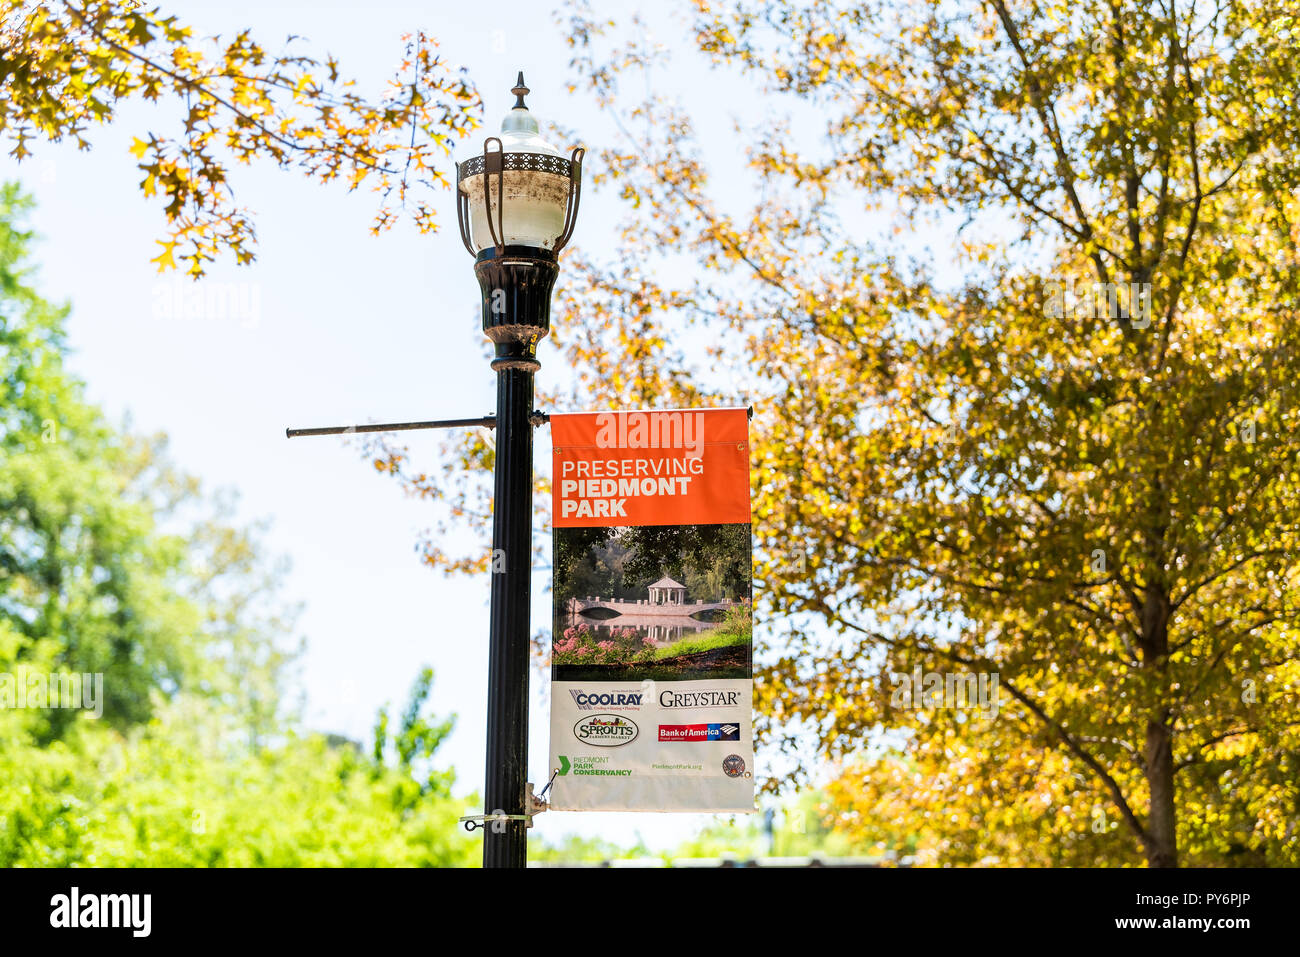 Atlanta, USA - April 20, 2018: Piedmont Park in Georgia capital urban city downtown, sign for preserving, conservancy on lamp lantern post pole - Stock Image